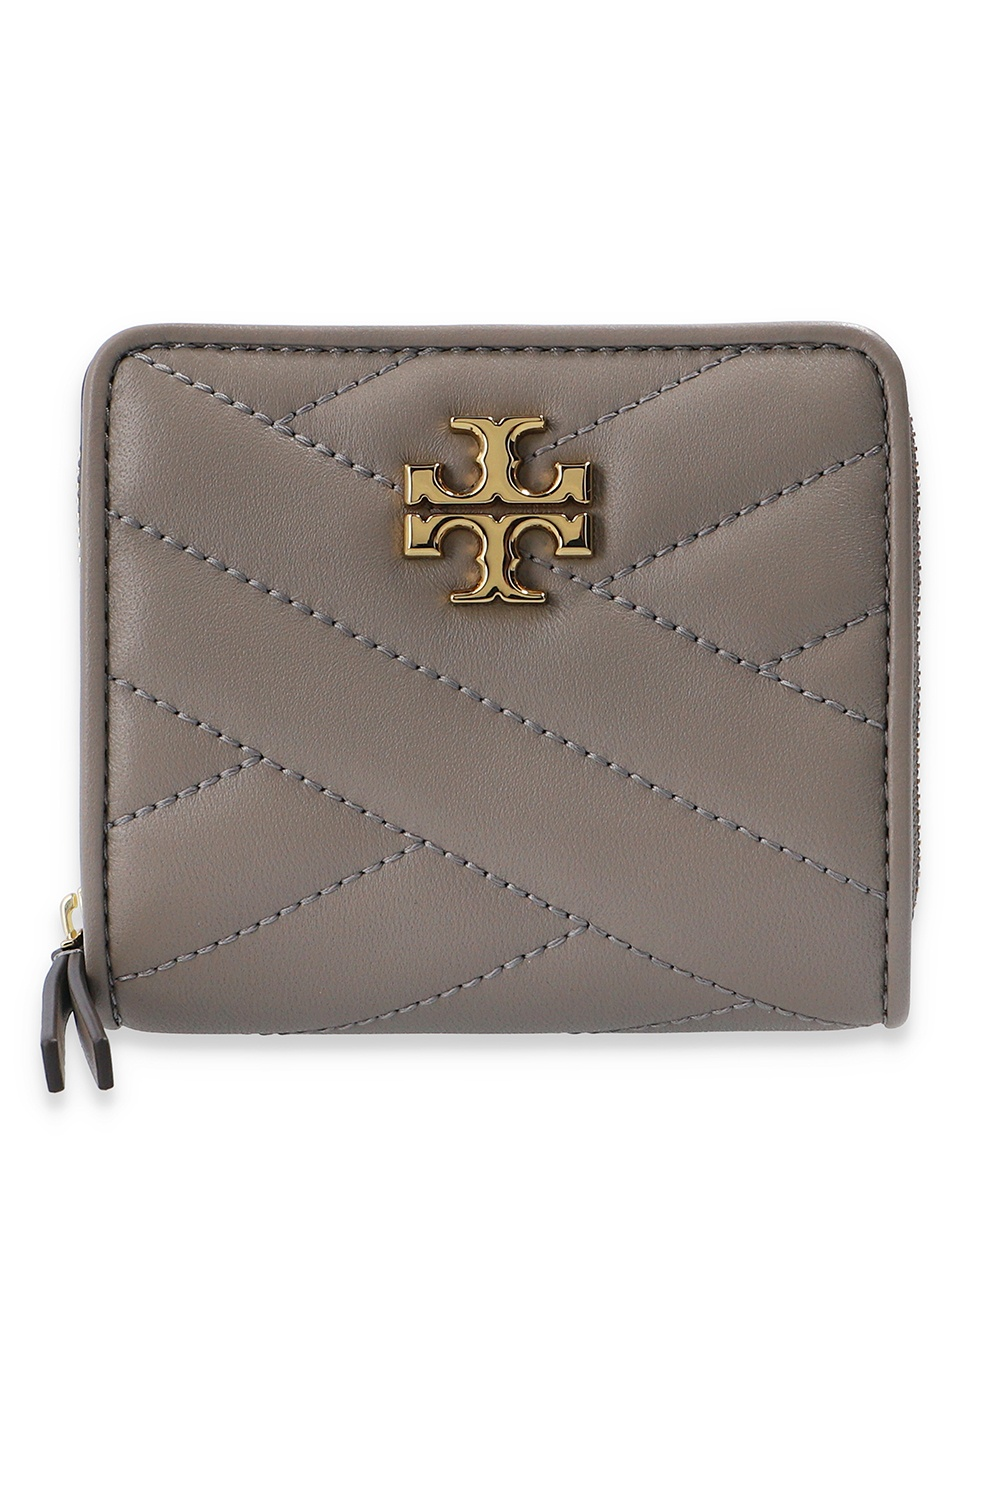 Tory Burch 'Kira' quilted wallet